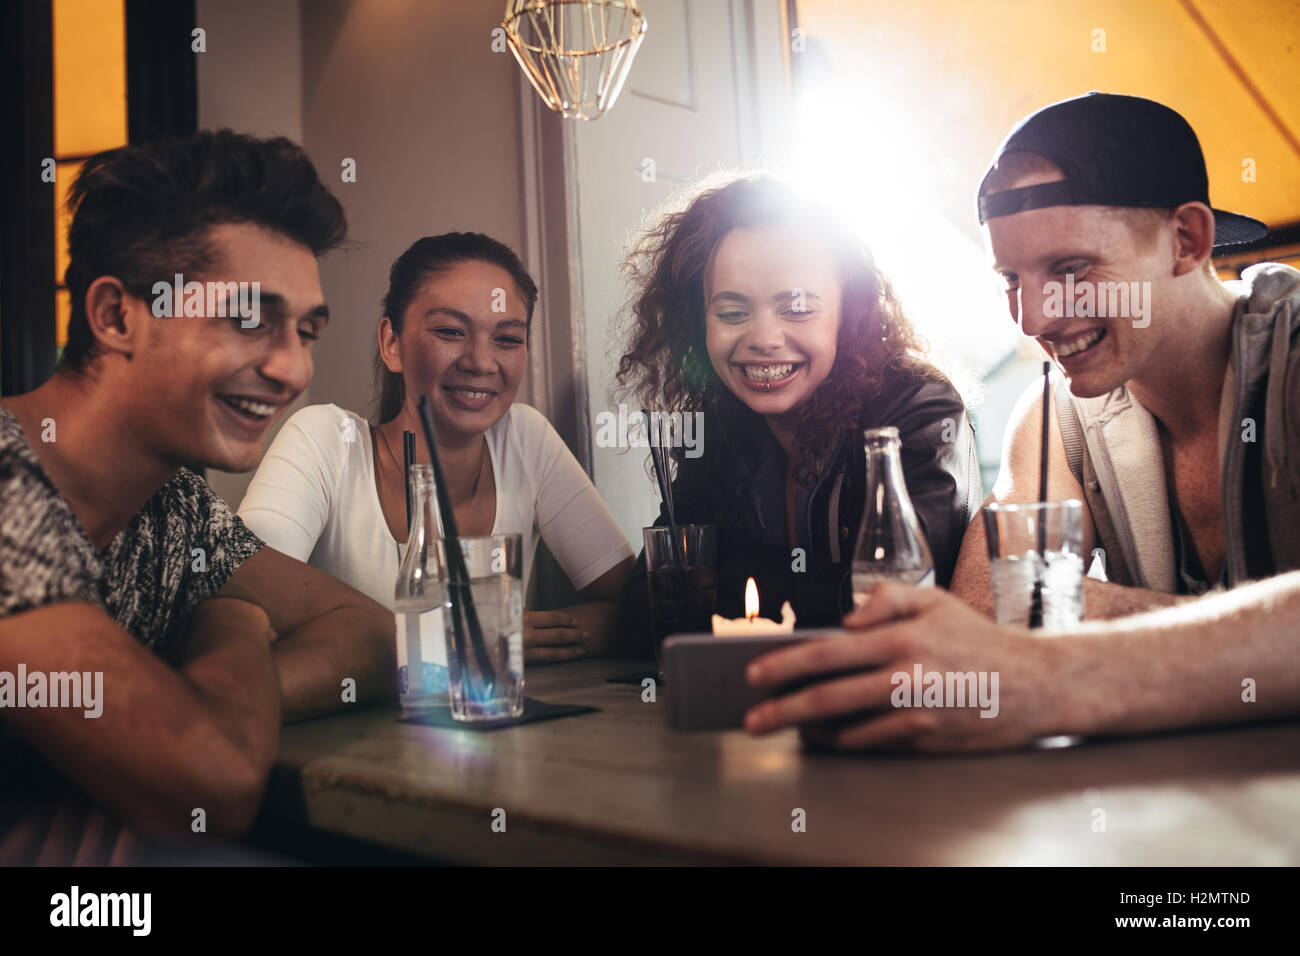 Groupe d'amis assis ensemble dans un cafe looking at mobile phone et souriant. Jeune homme montrant quelque Photo Stock